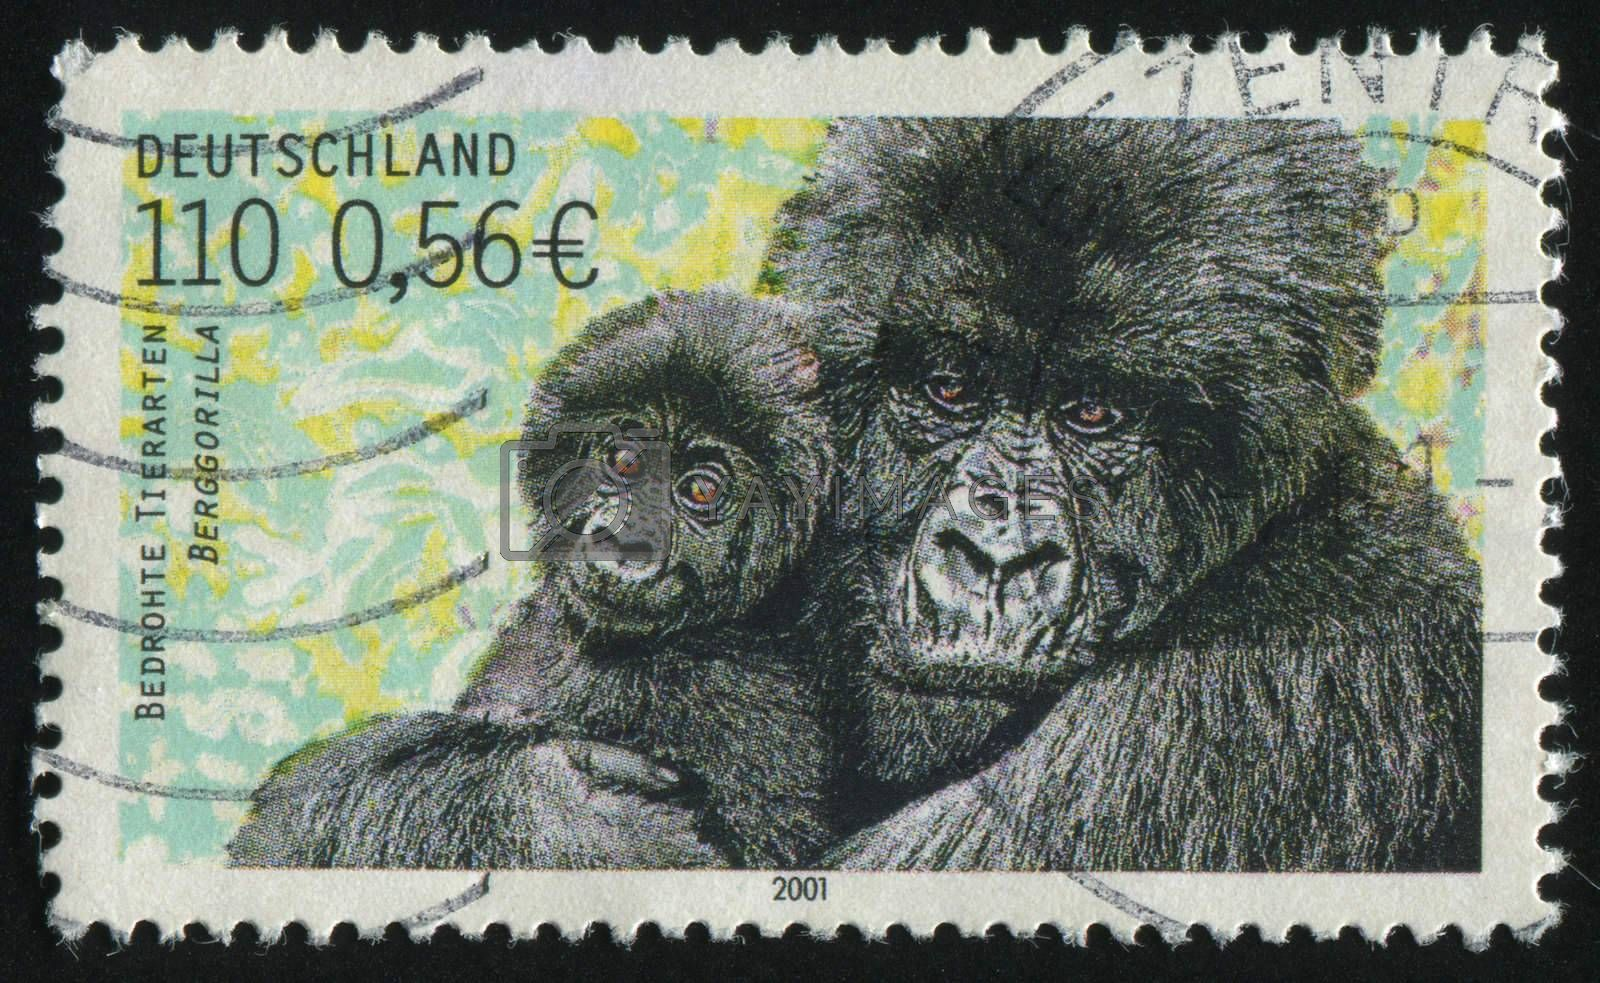 GERMANY- CIRCA 2001: stamp printed by Germany, shows  Mountain gorilla, circa 2001.